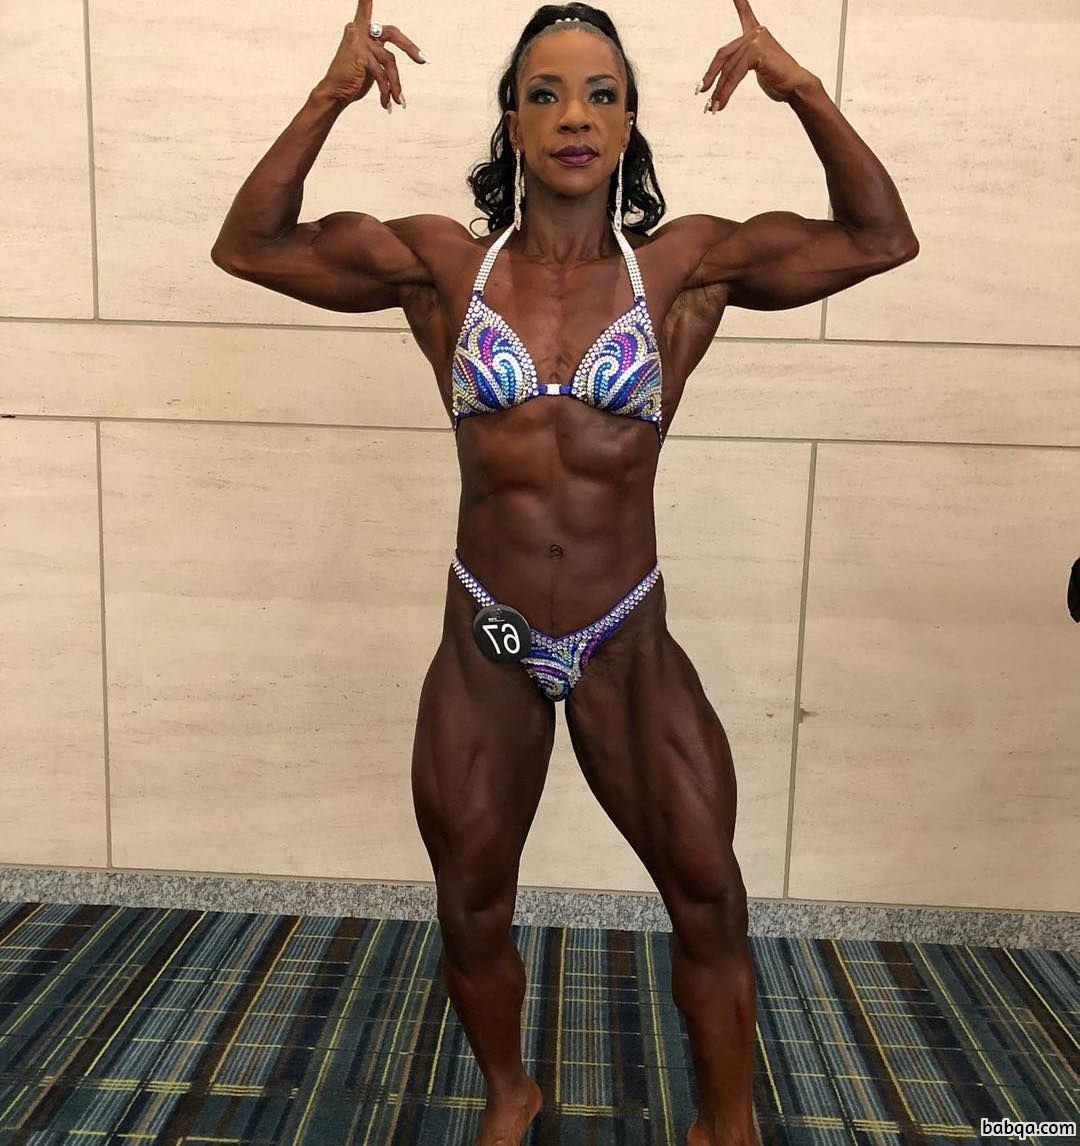 cute woman with muscular body and toned legs repost from